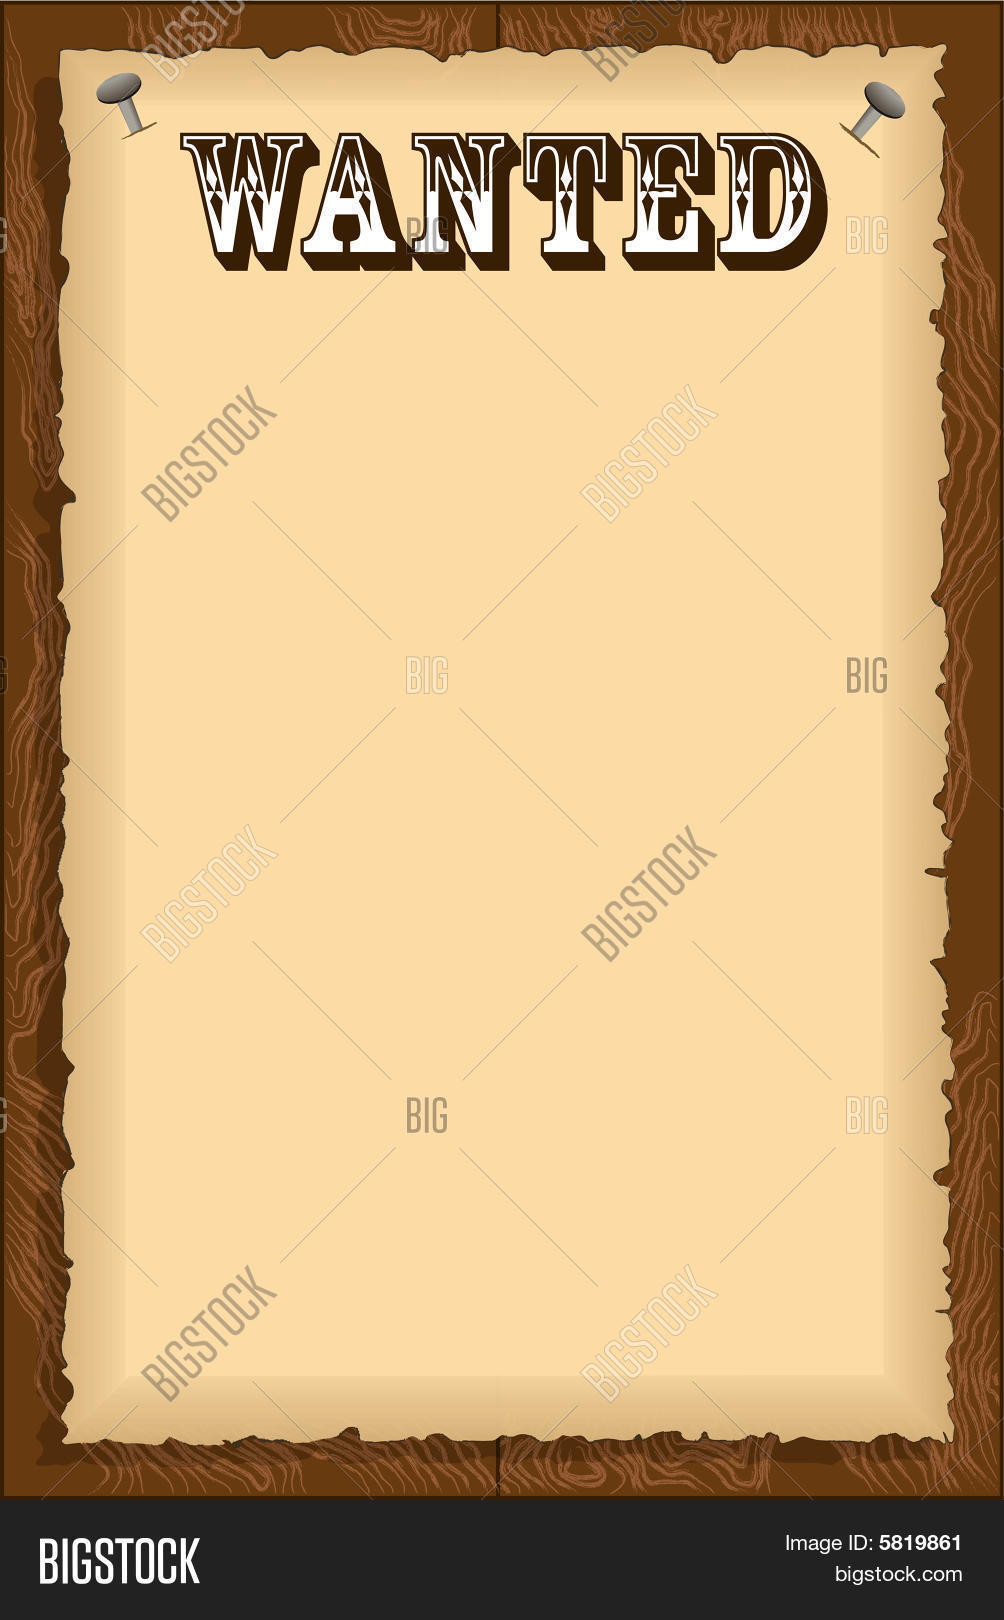 Wanted Poster Vector & Photo (Free Trial) | Bigstock